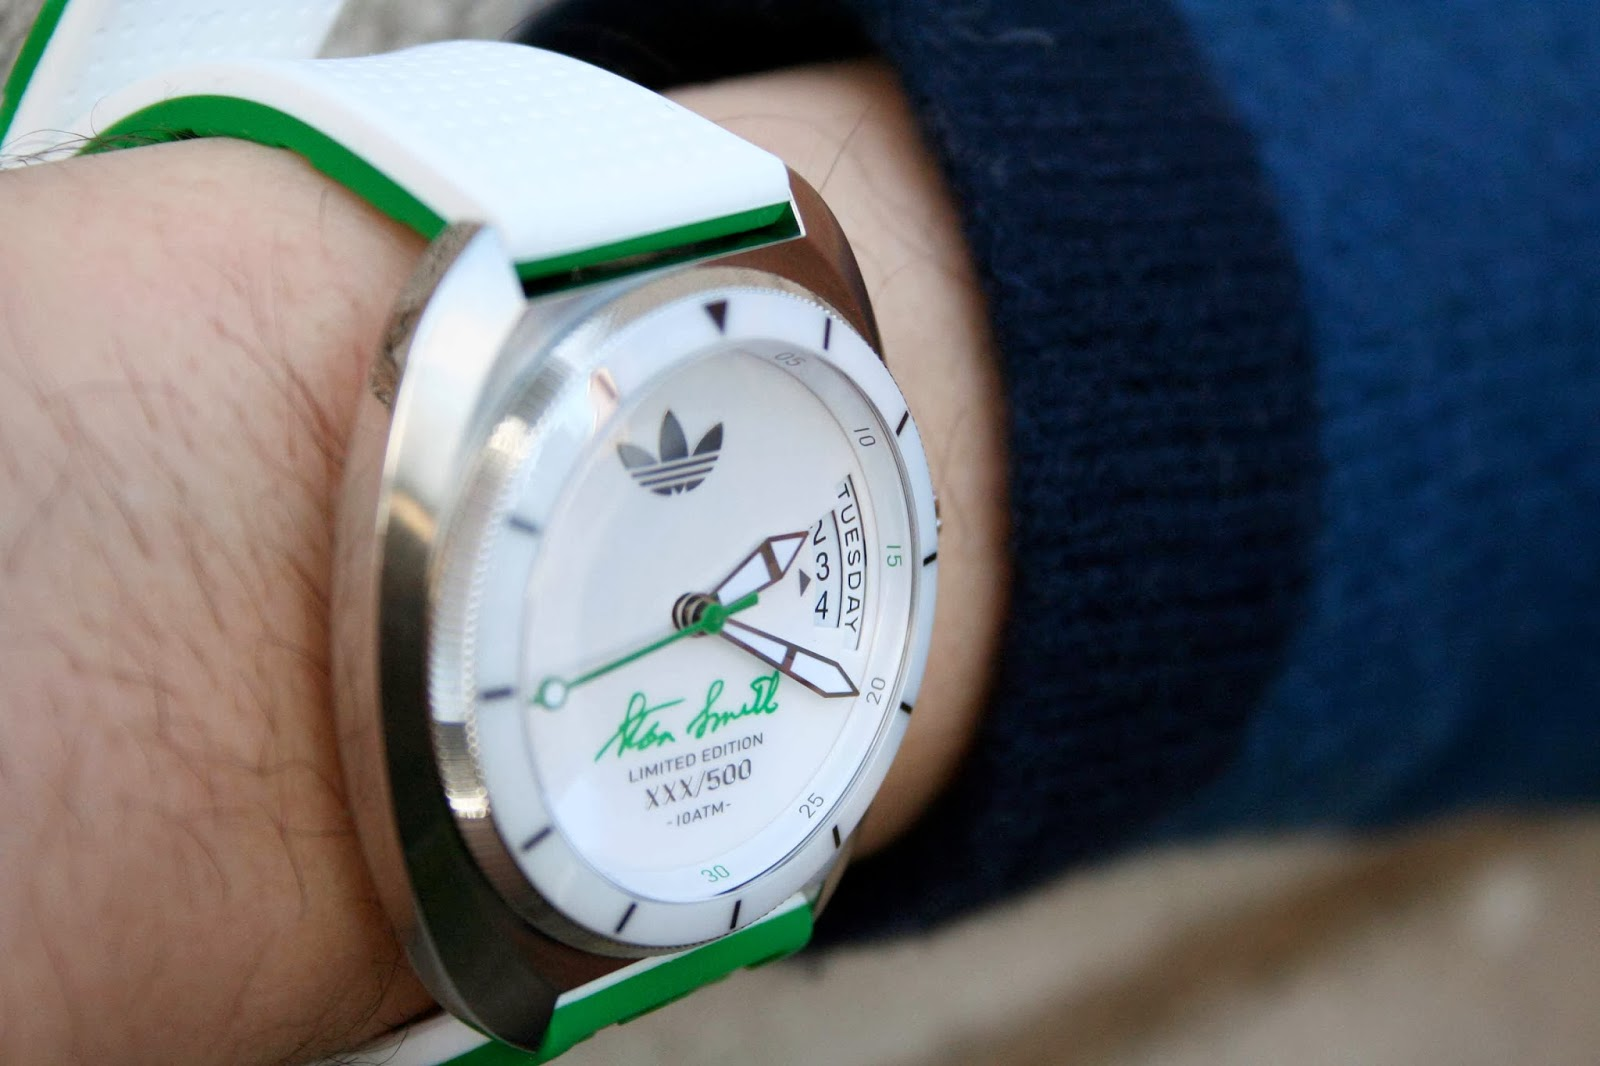 adidas originals stan smith limited edition watch